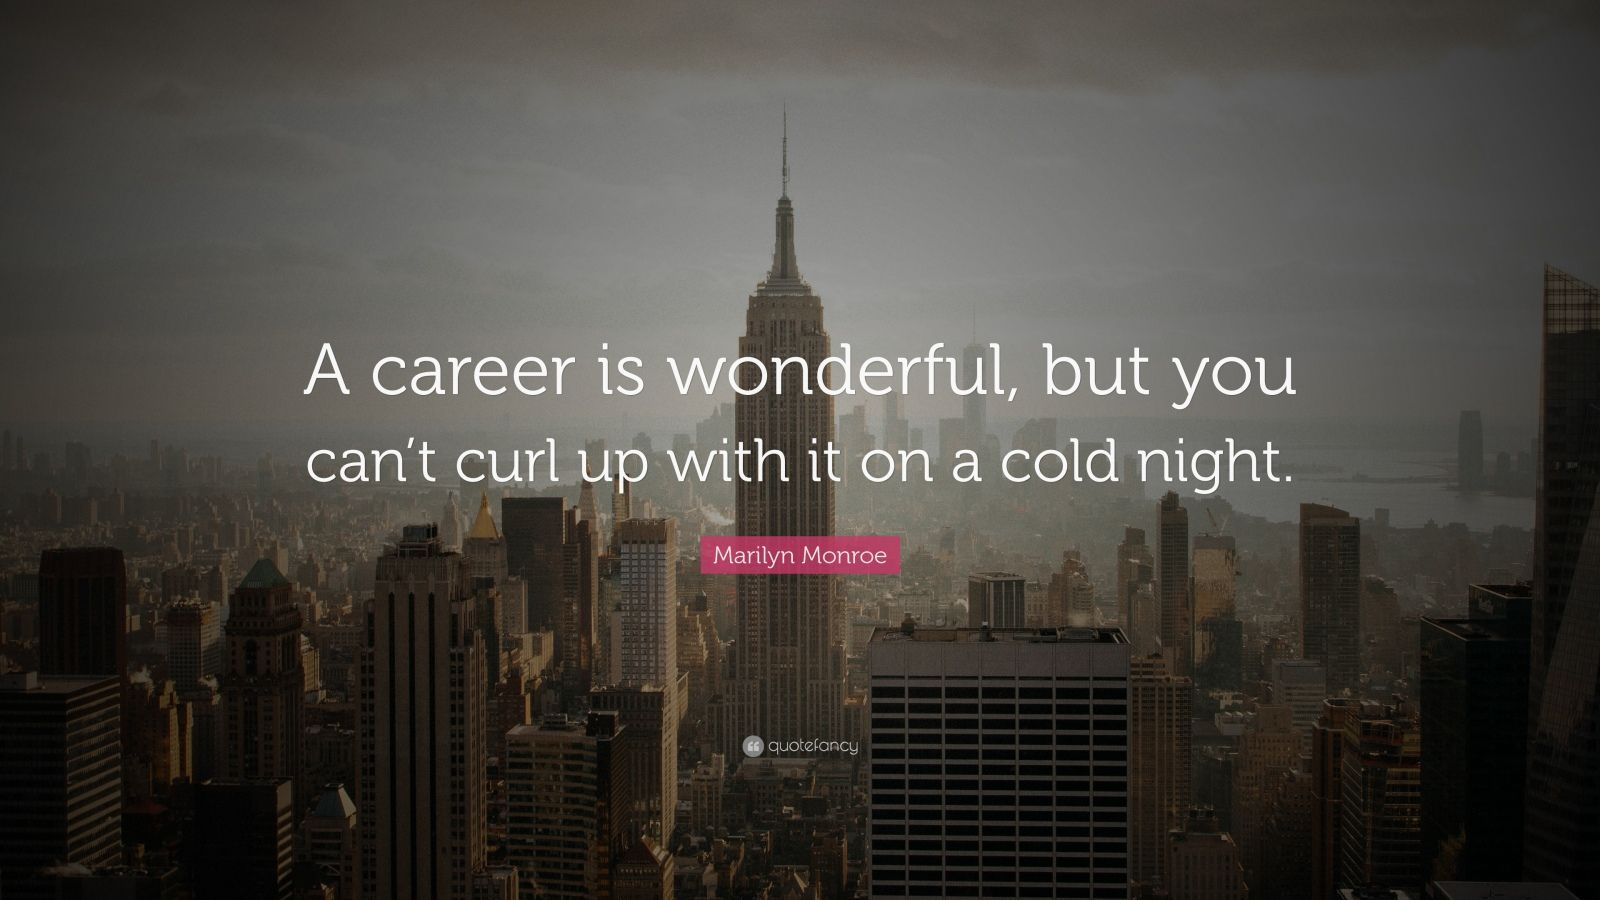 the life and career of marilyn monroe These marilyn monroe quotes provide a glimpse into the fast and furious life she led  find a balance between your career and your love life so that you don't.